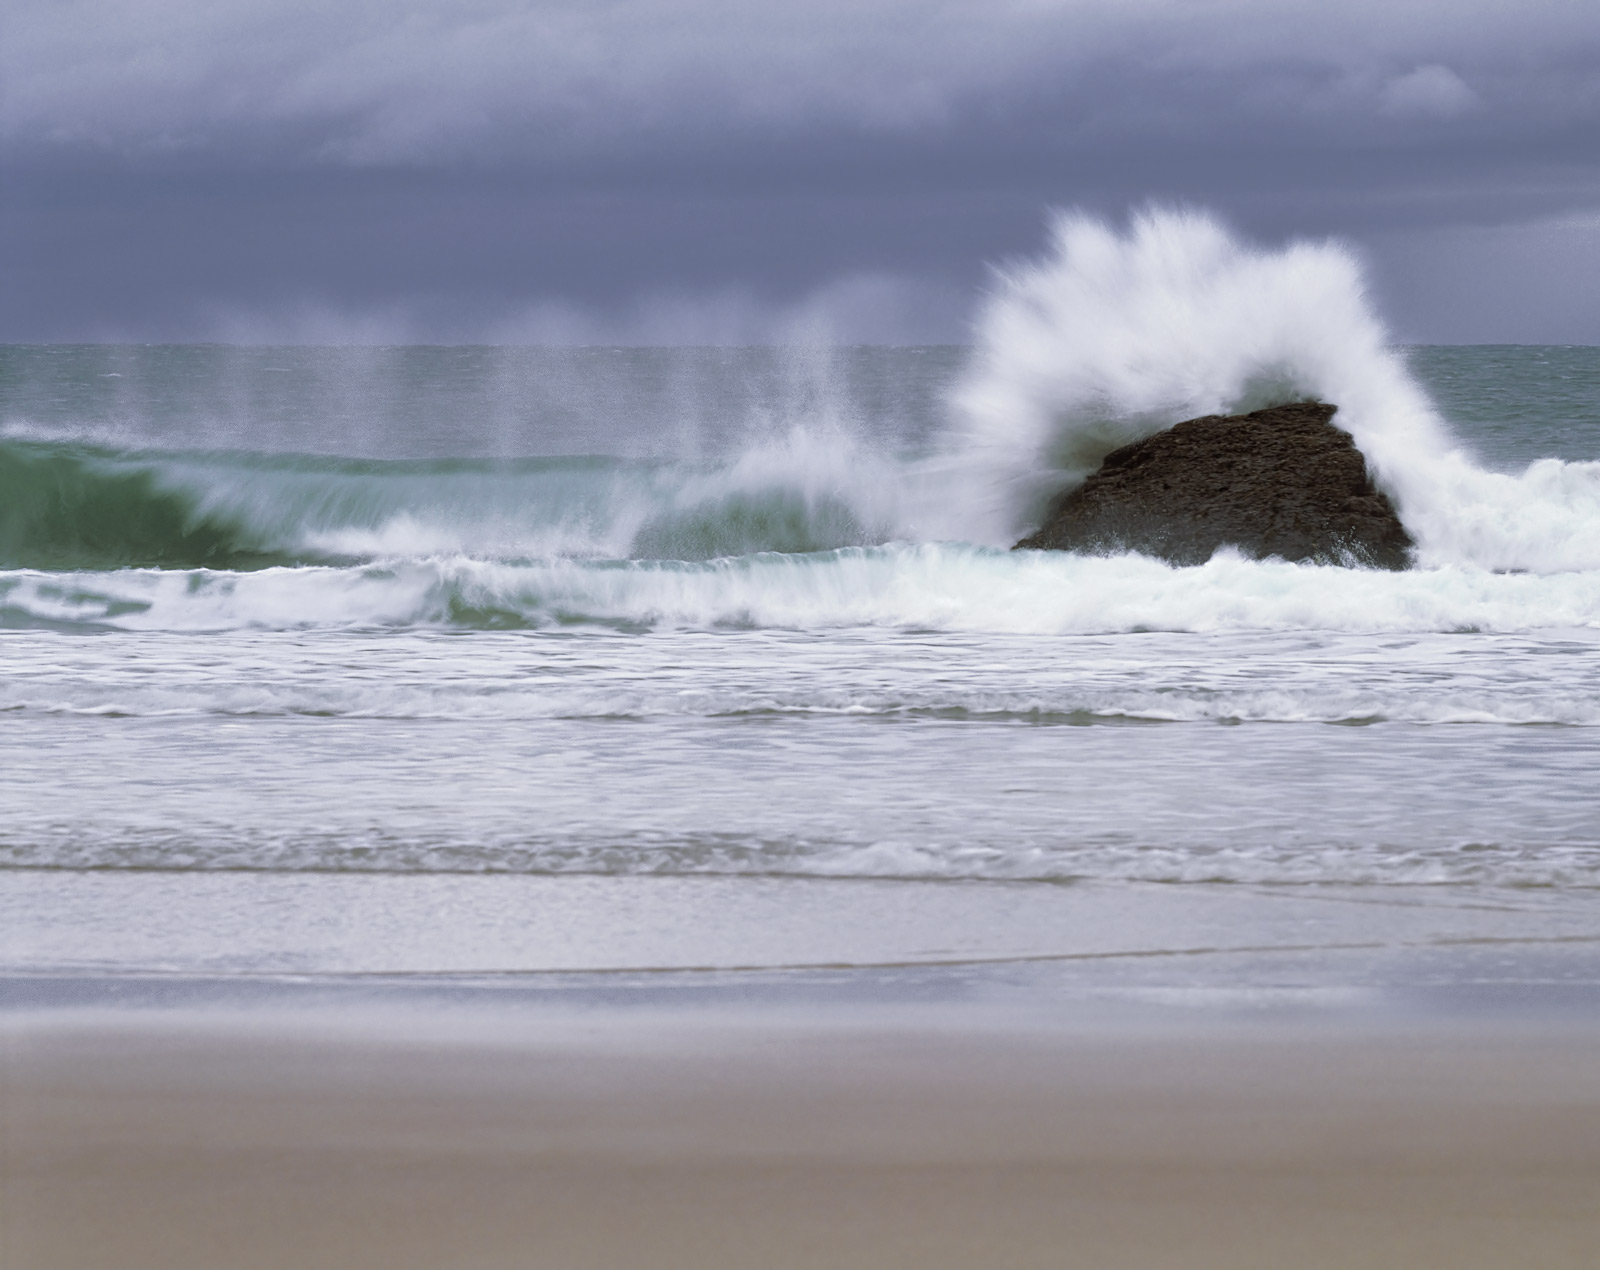 Huge rolling waves amidst a fierce offshore wind blew back plumes of spray from the cresting waves as they smashed against the...